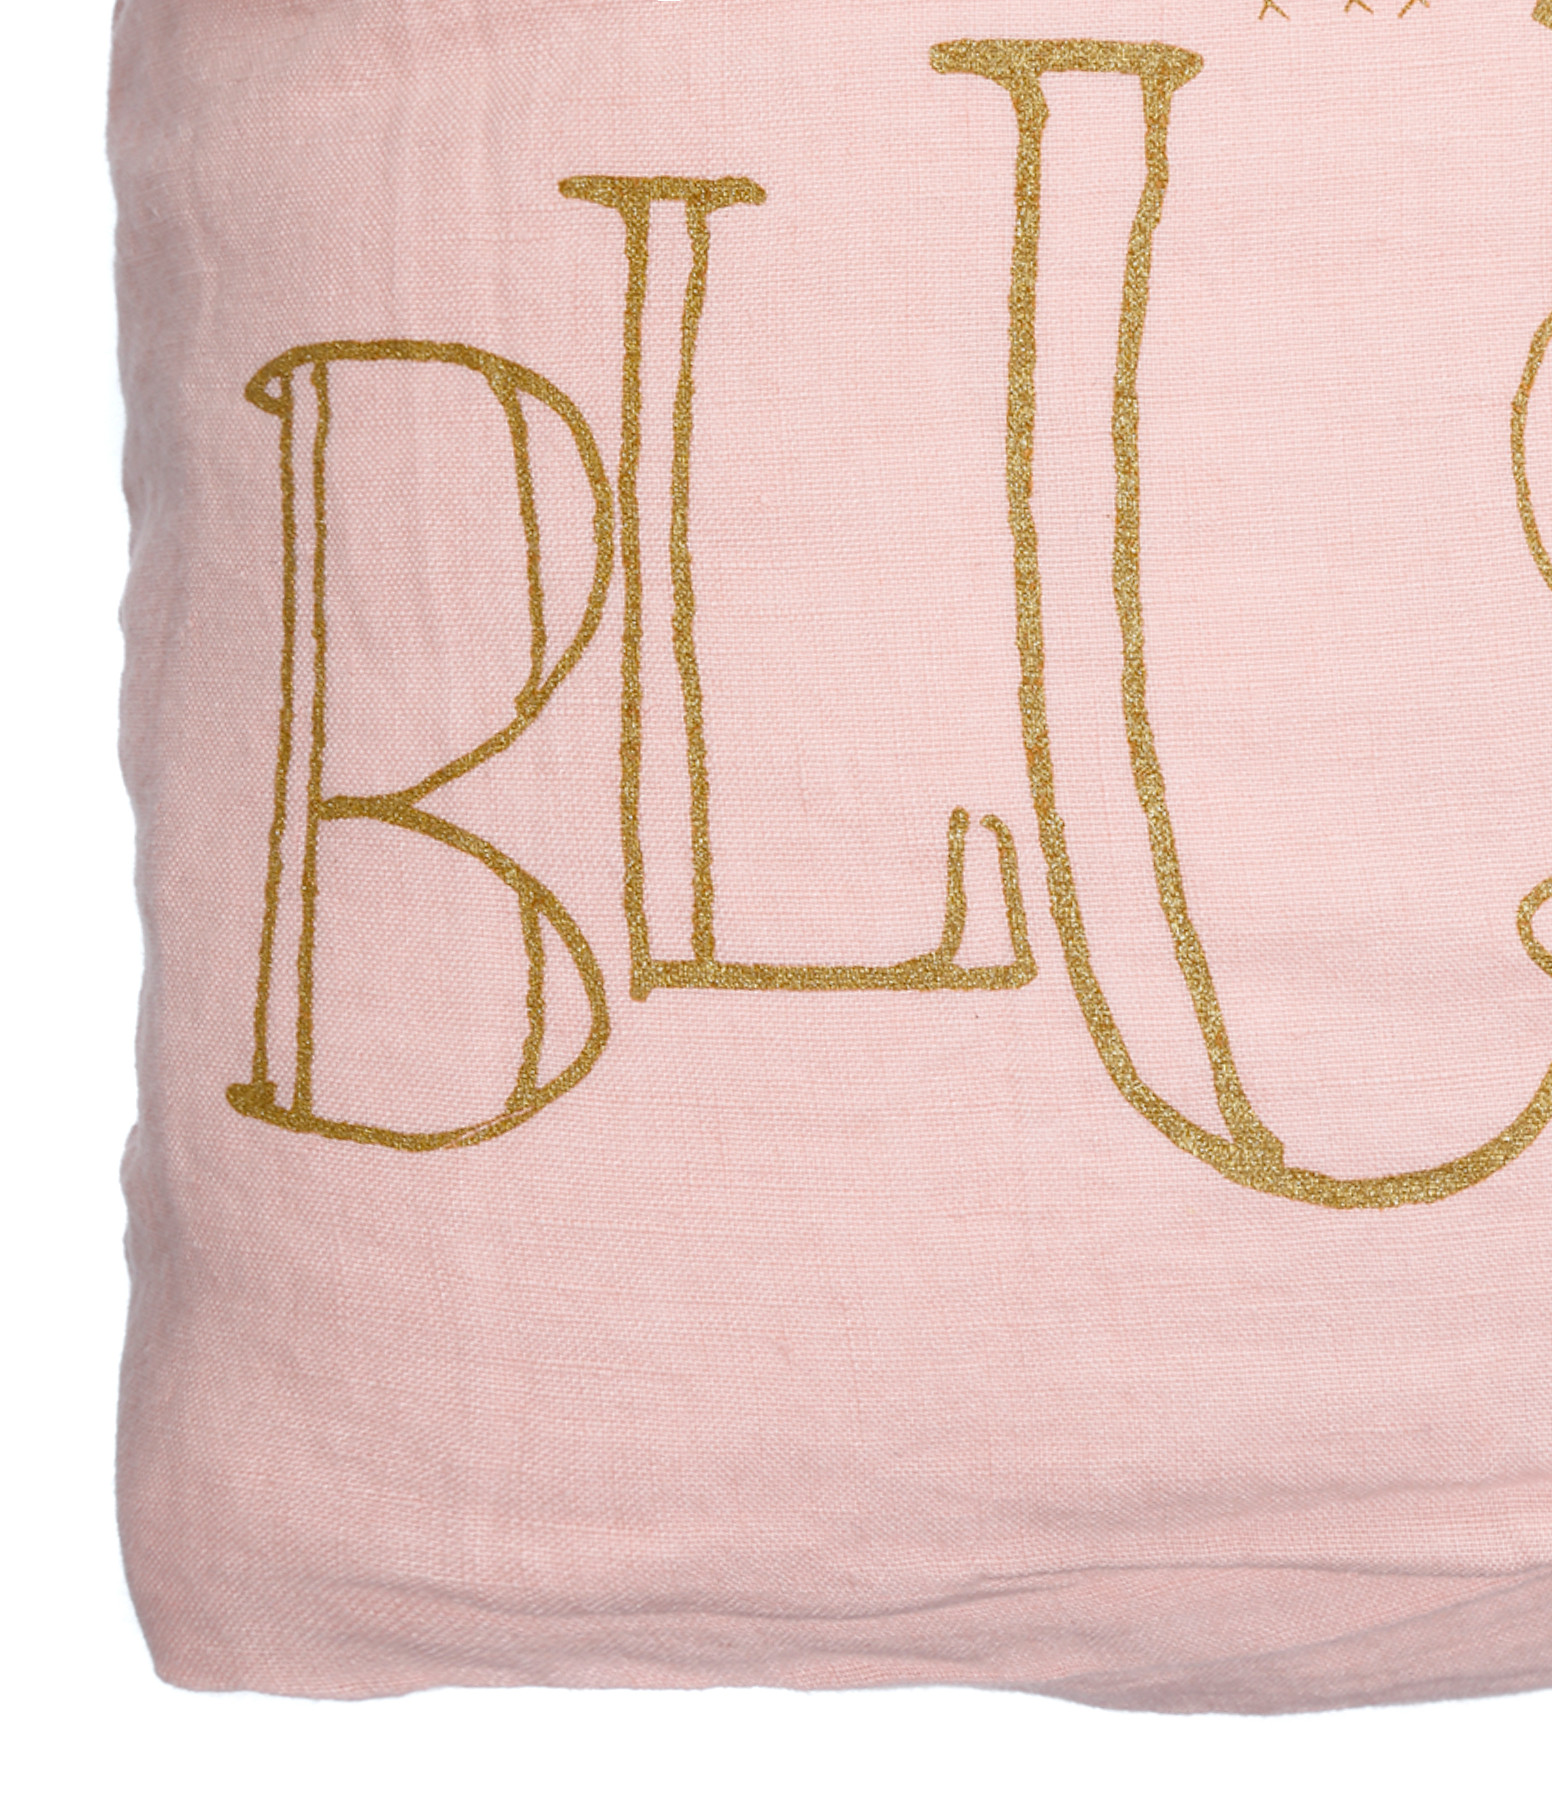 Coussin Molly Lin Blush Print Gold 35 x 35 - Bed and Philosophy